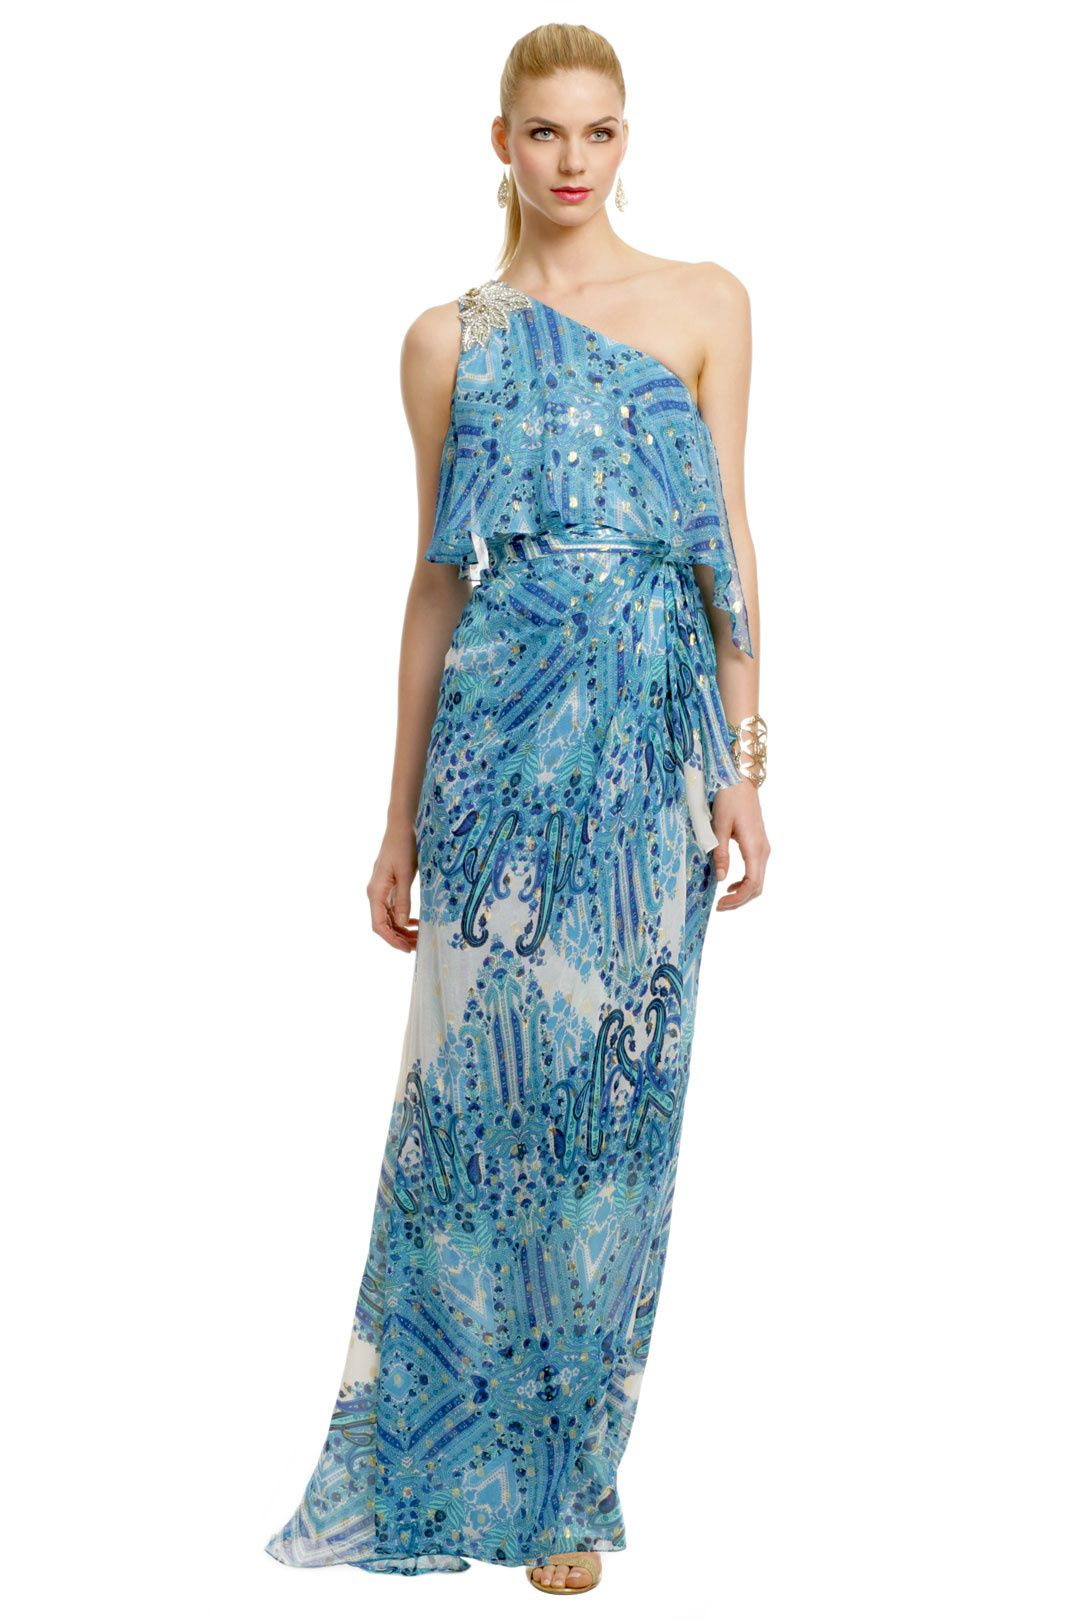 Badgley Mischka Dream On Gown | This dress was just made for beach ...